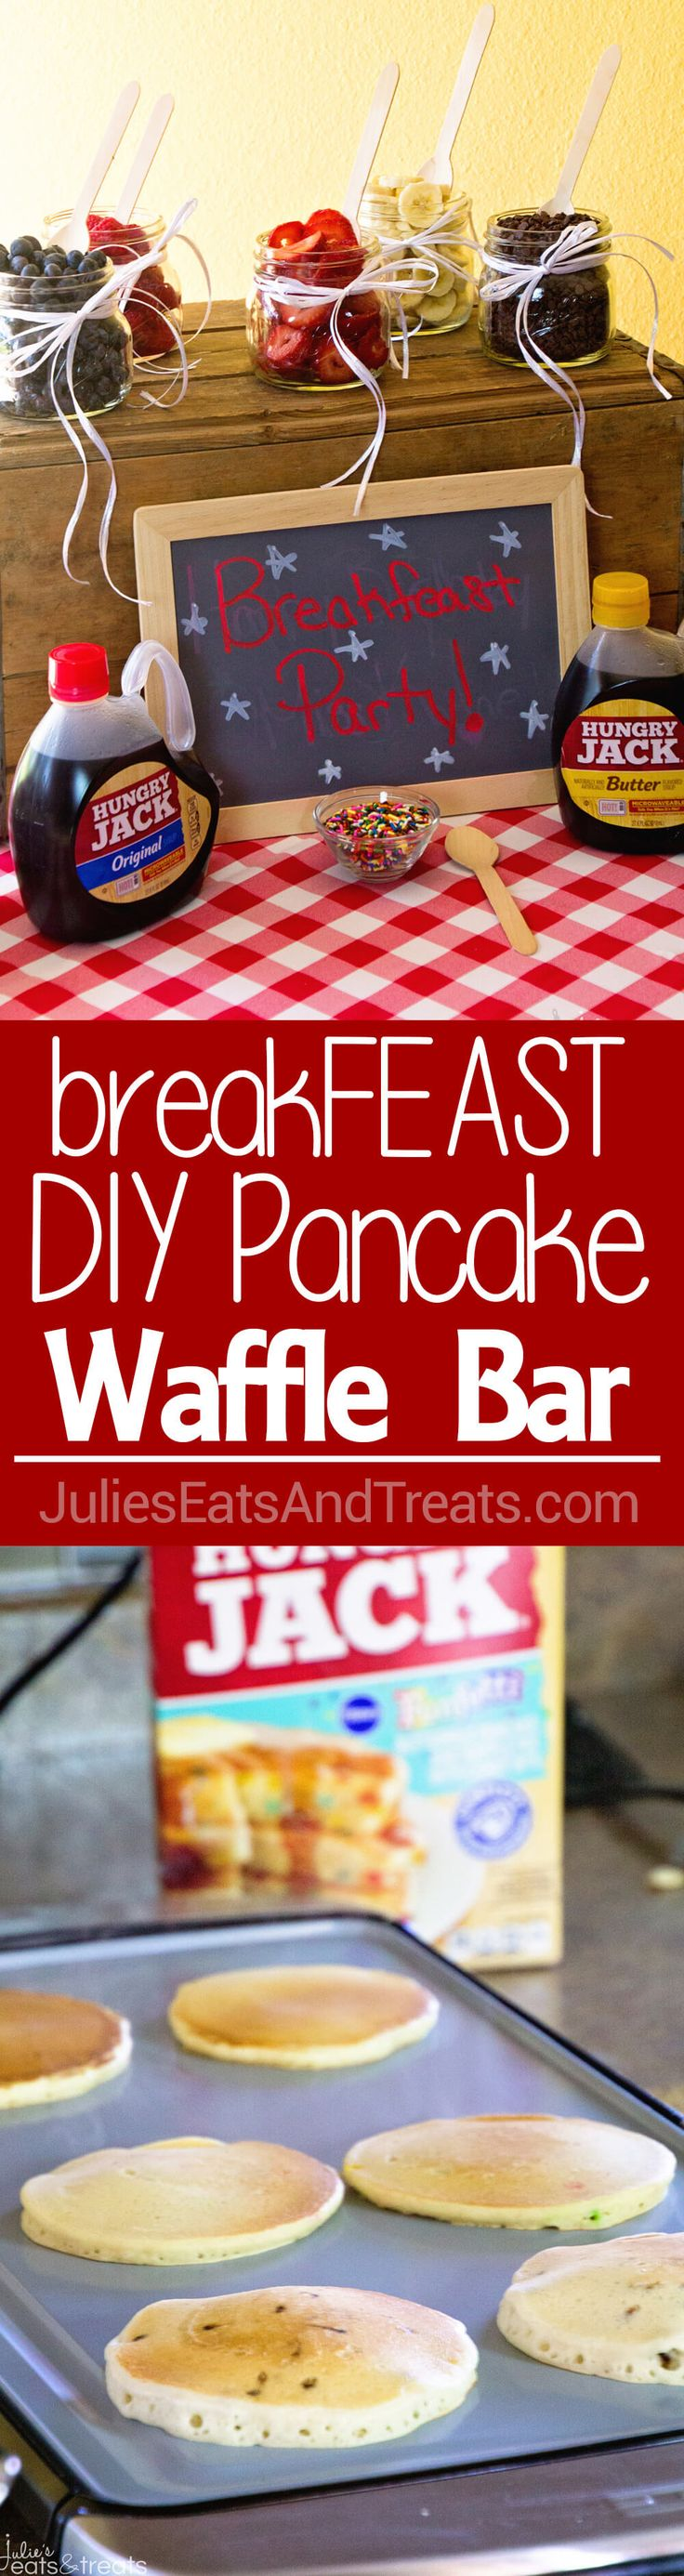 breakFEAST Pancake Bar Party ~ How to Throw You Own Breakfast Party Featuring Pancakes and Waffles! It's So Much Fun and So Easy! #ad #breakFEAST